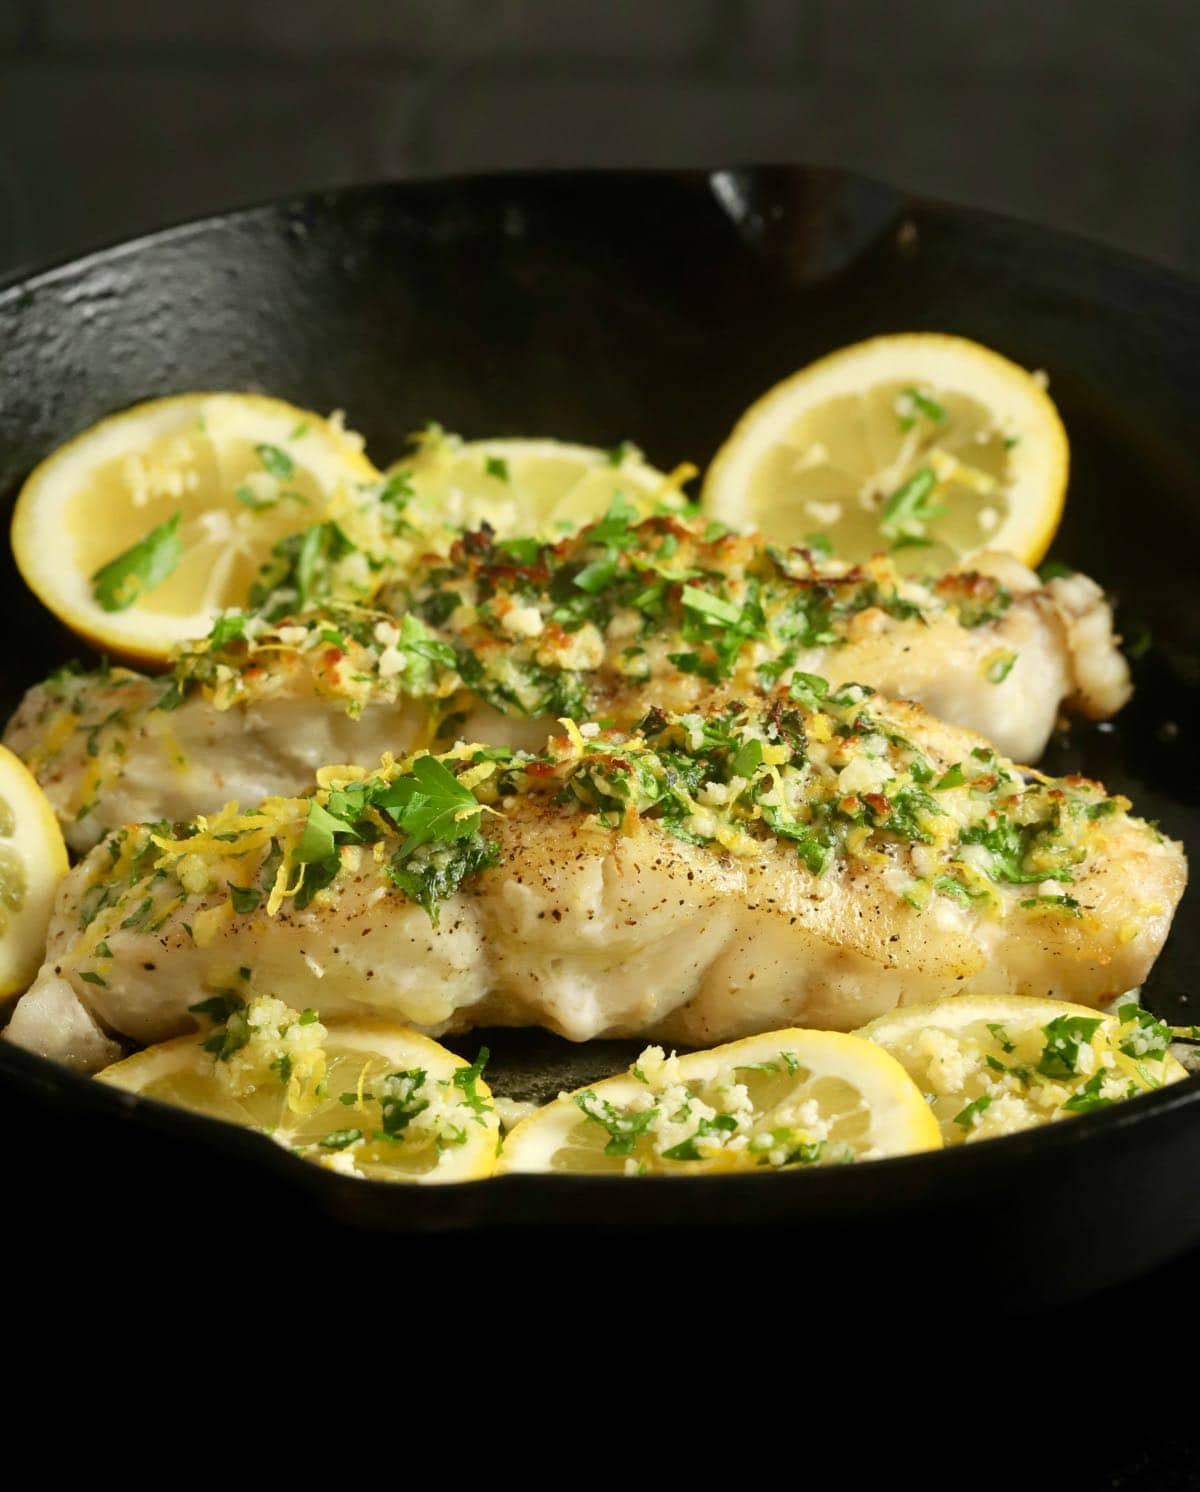 Two grouper fillets topped with gremolata in a cast-iron skillet with lemon slices.